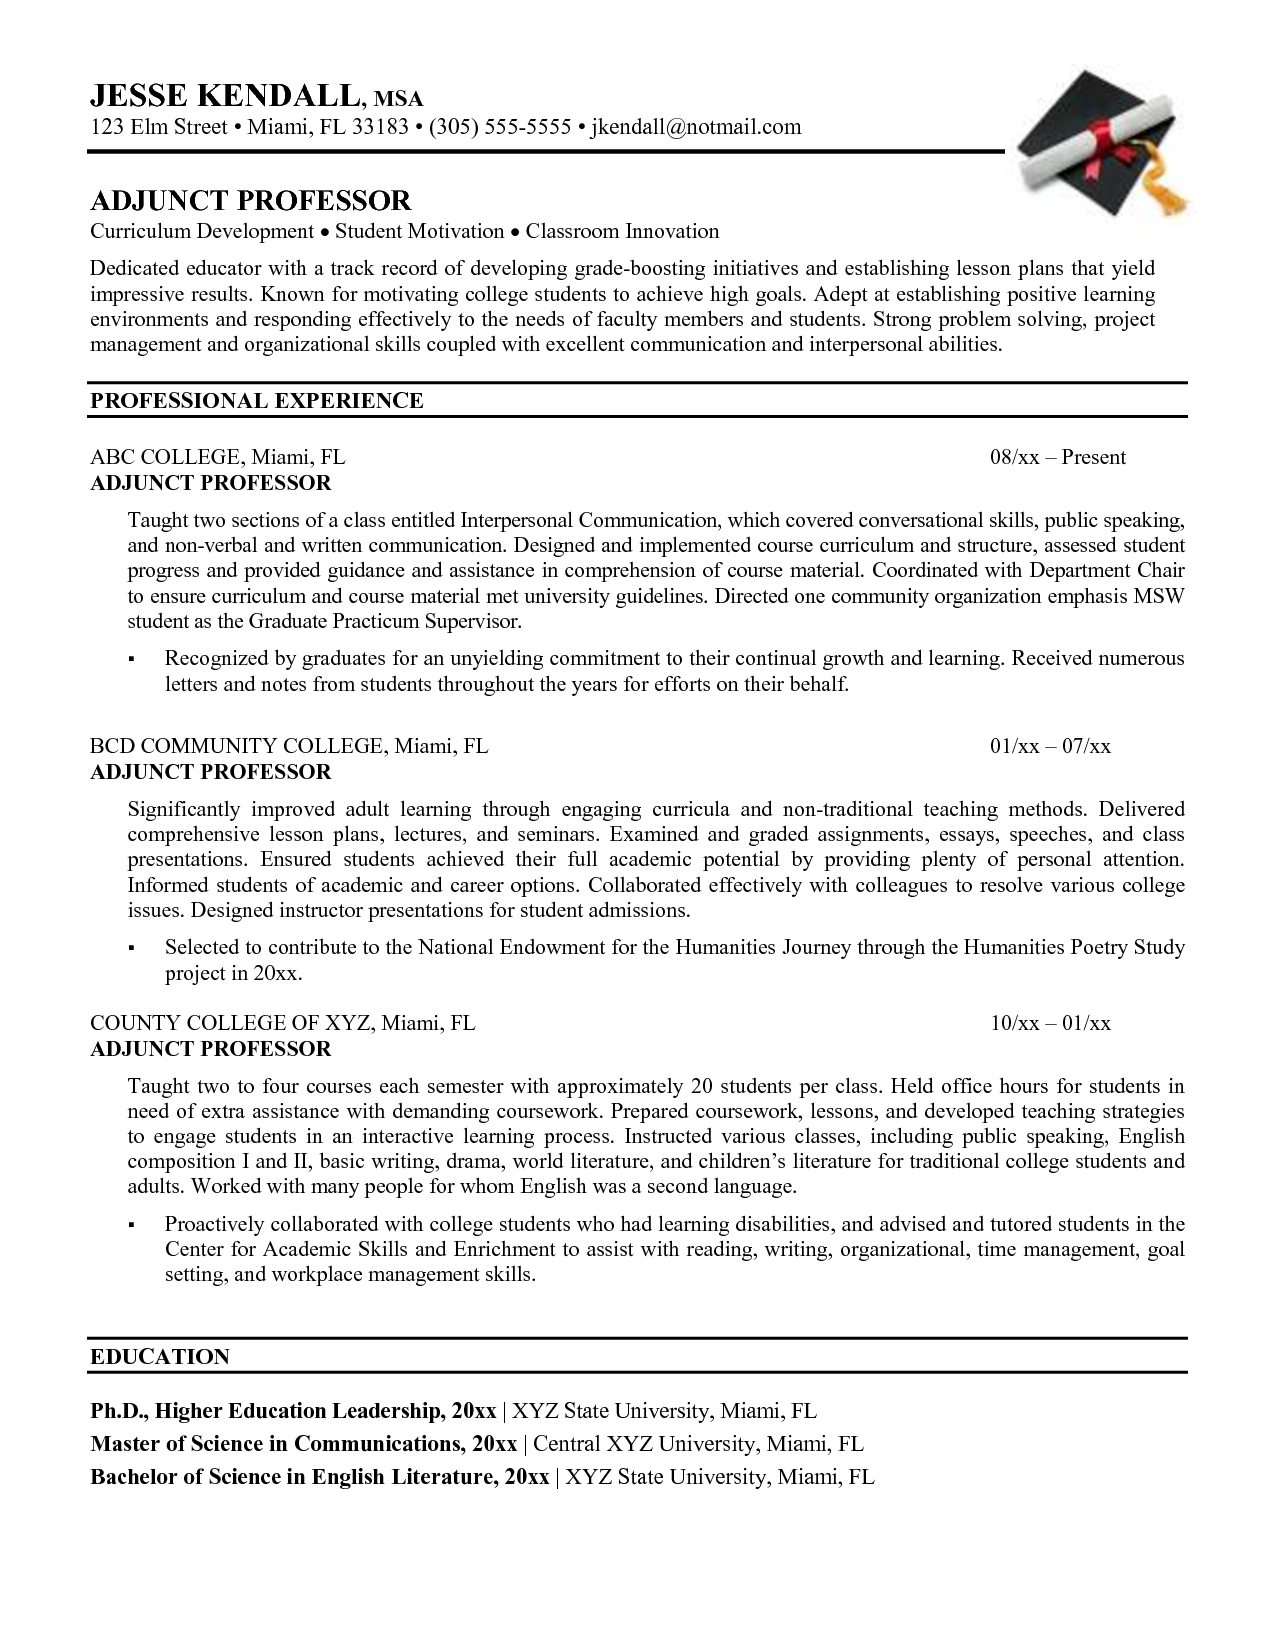 sample resume for faculty position engineering adjunct professor resume best template collection